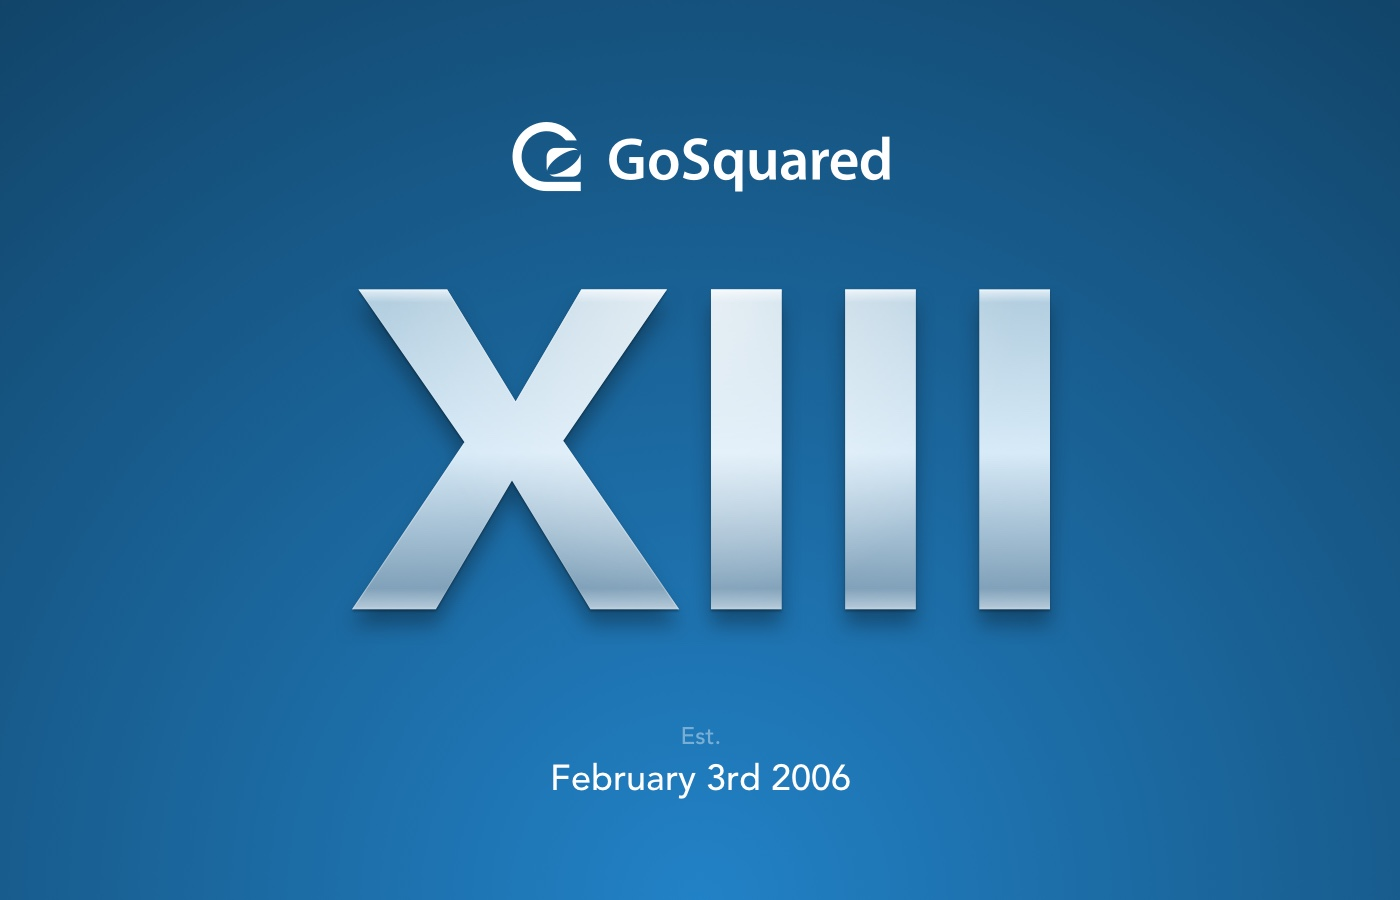 GoSquared turns 13